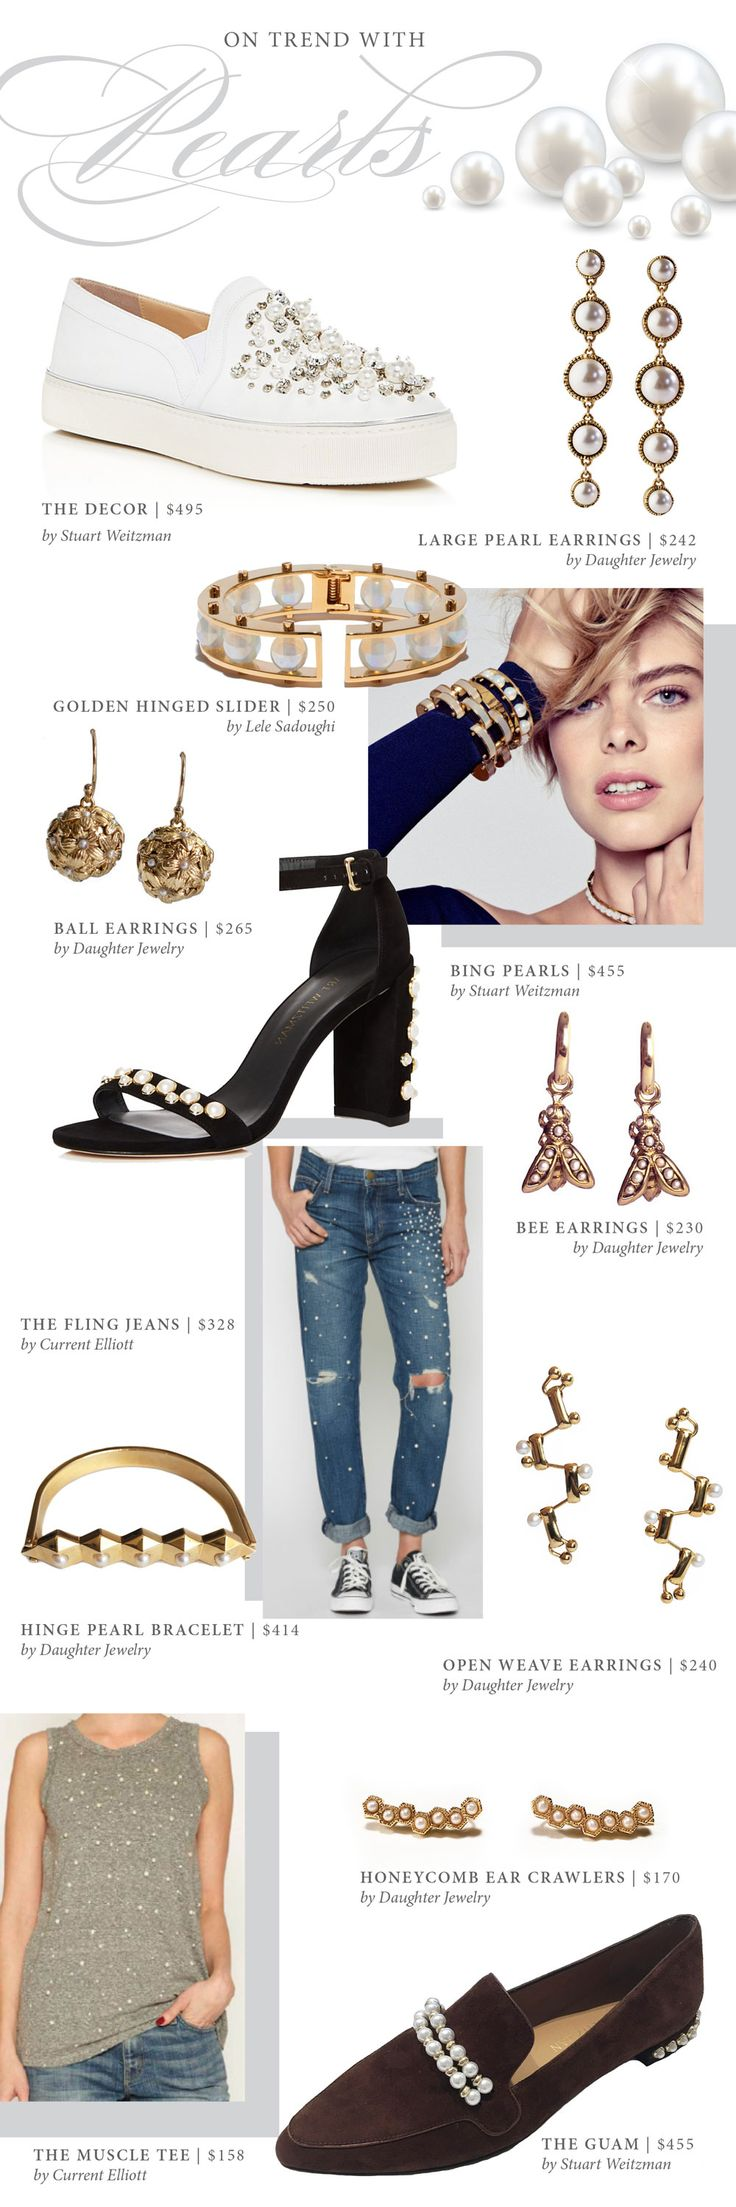 On Trend: (Not So Basic) Pearls